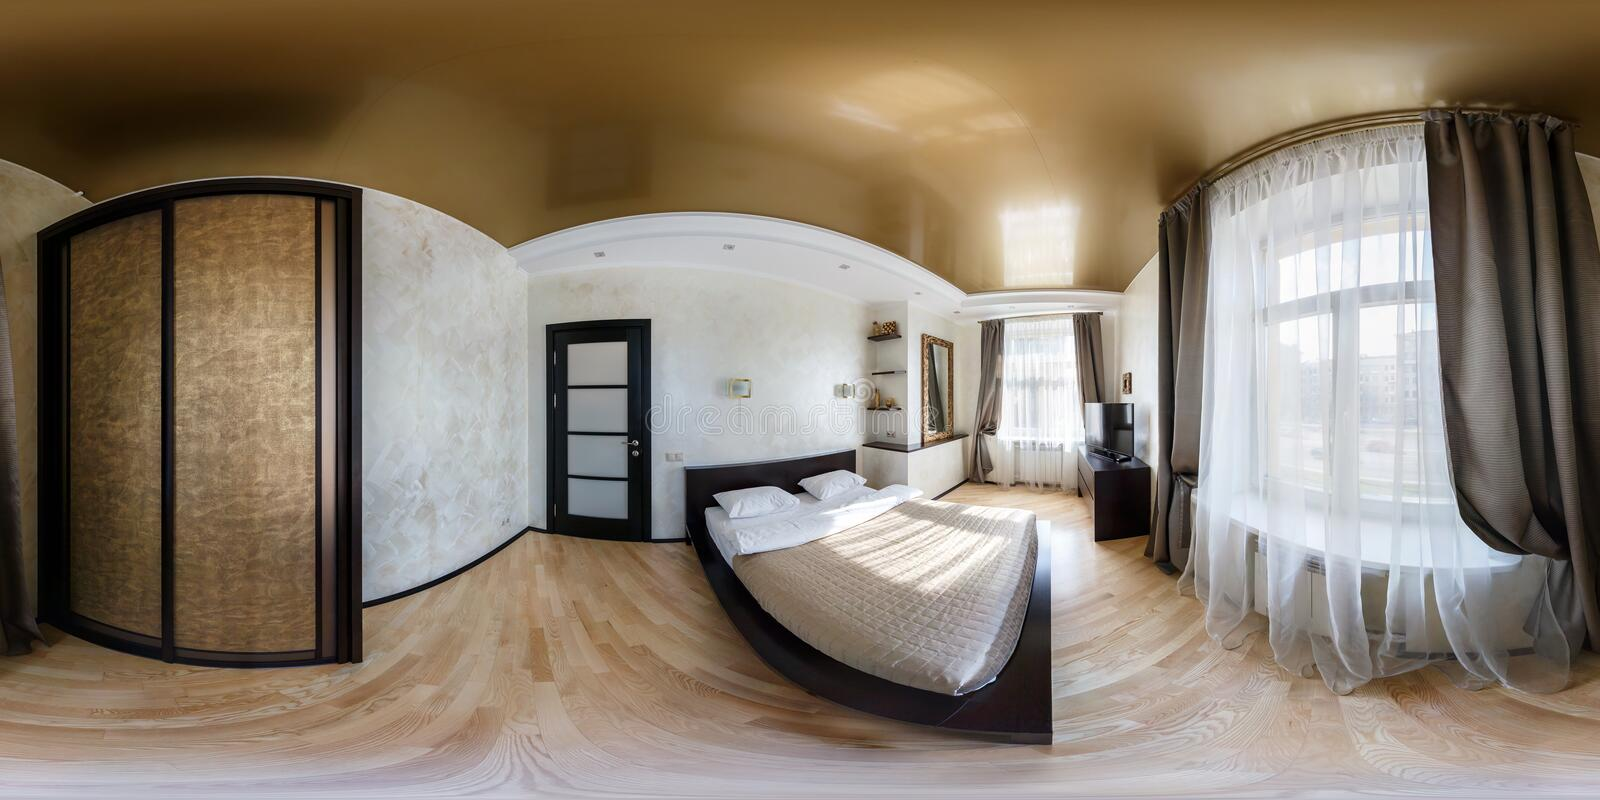 MINSK, BELARUS - MARCH 25, 2014: Full spherical 360 by 180 degrees seamless panorama in equirectangular equidistant projection,. Panorama in interior bedroom in royalty free stock photo